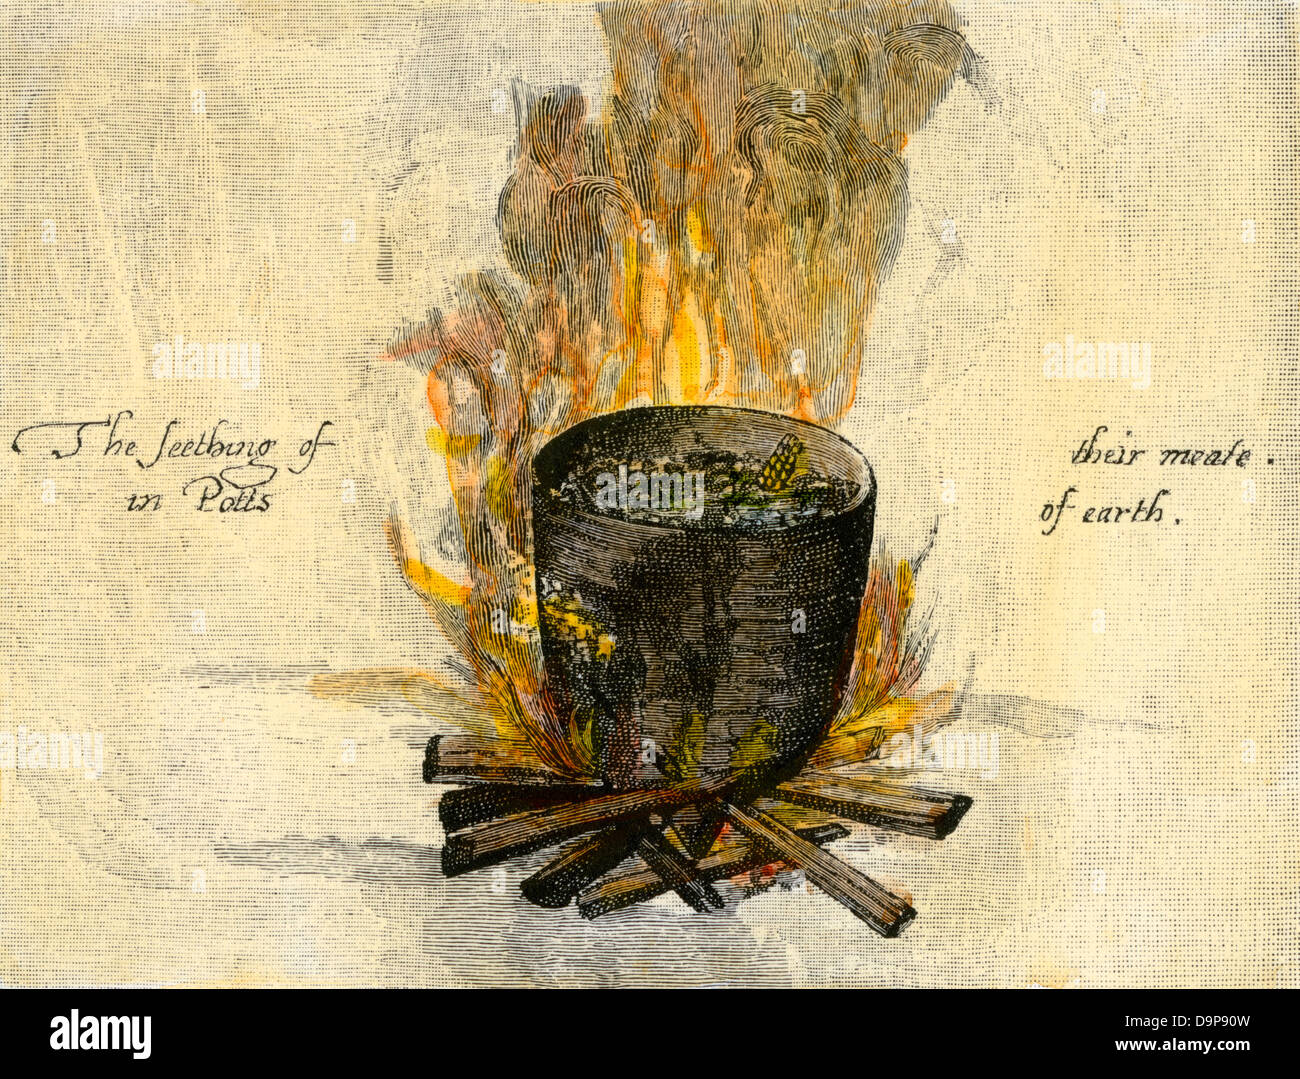 Native American cookpot, Virginia Colony, 1585. Hand-colored woodcut of a John White illustration - Stock Image